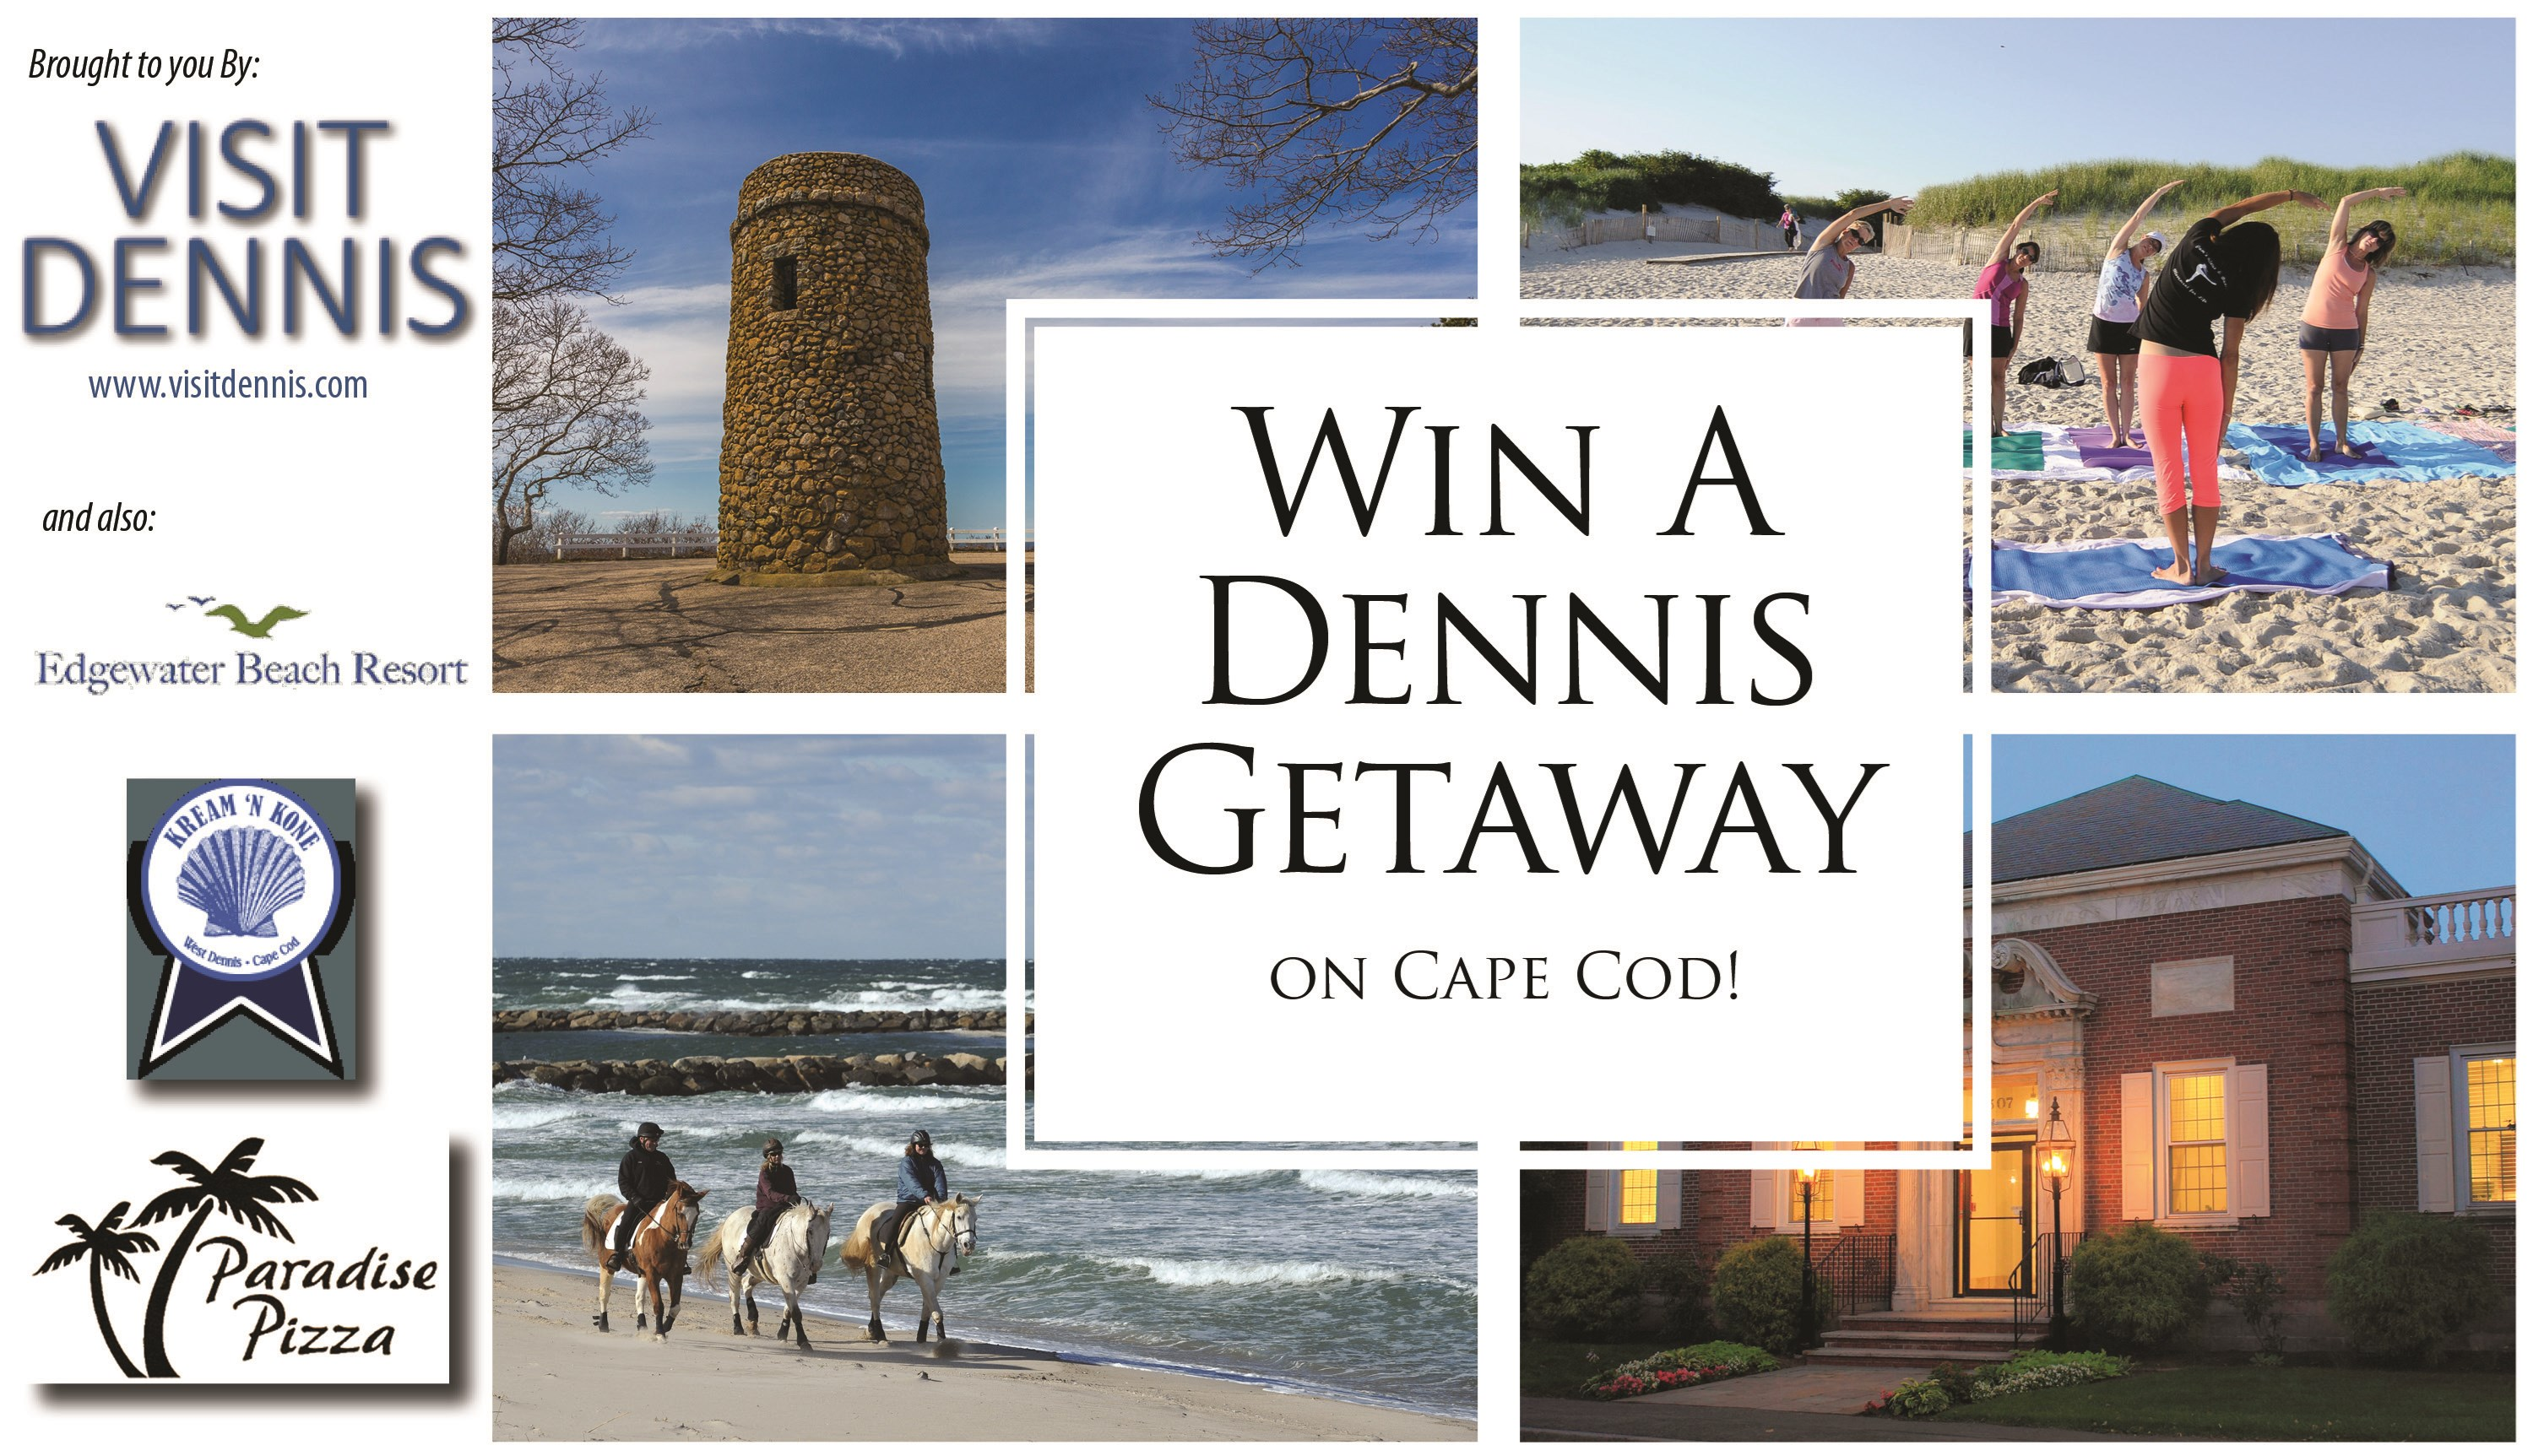 Dennis Getaway On Cape Cod Sweepstakes - Contests and